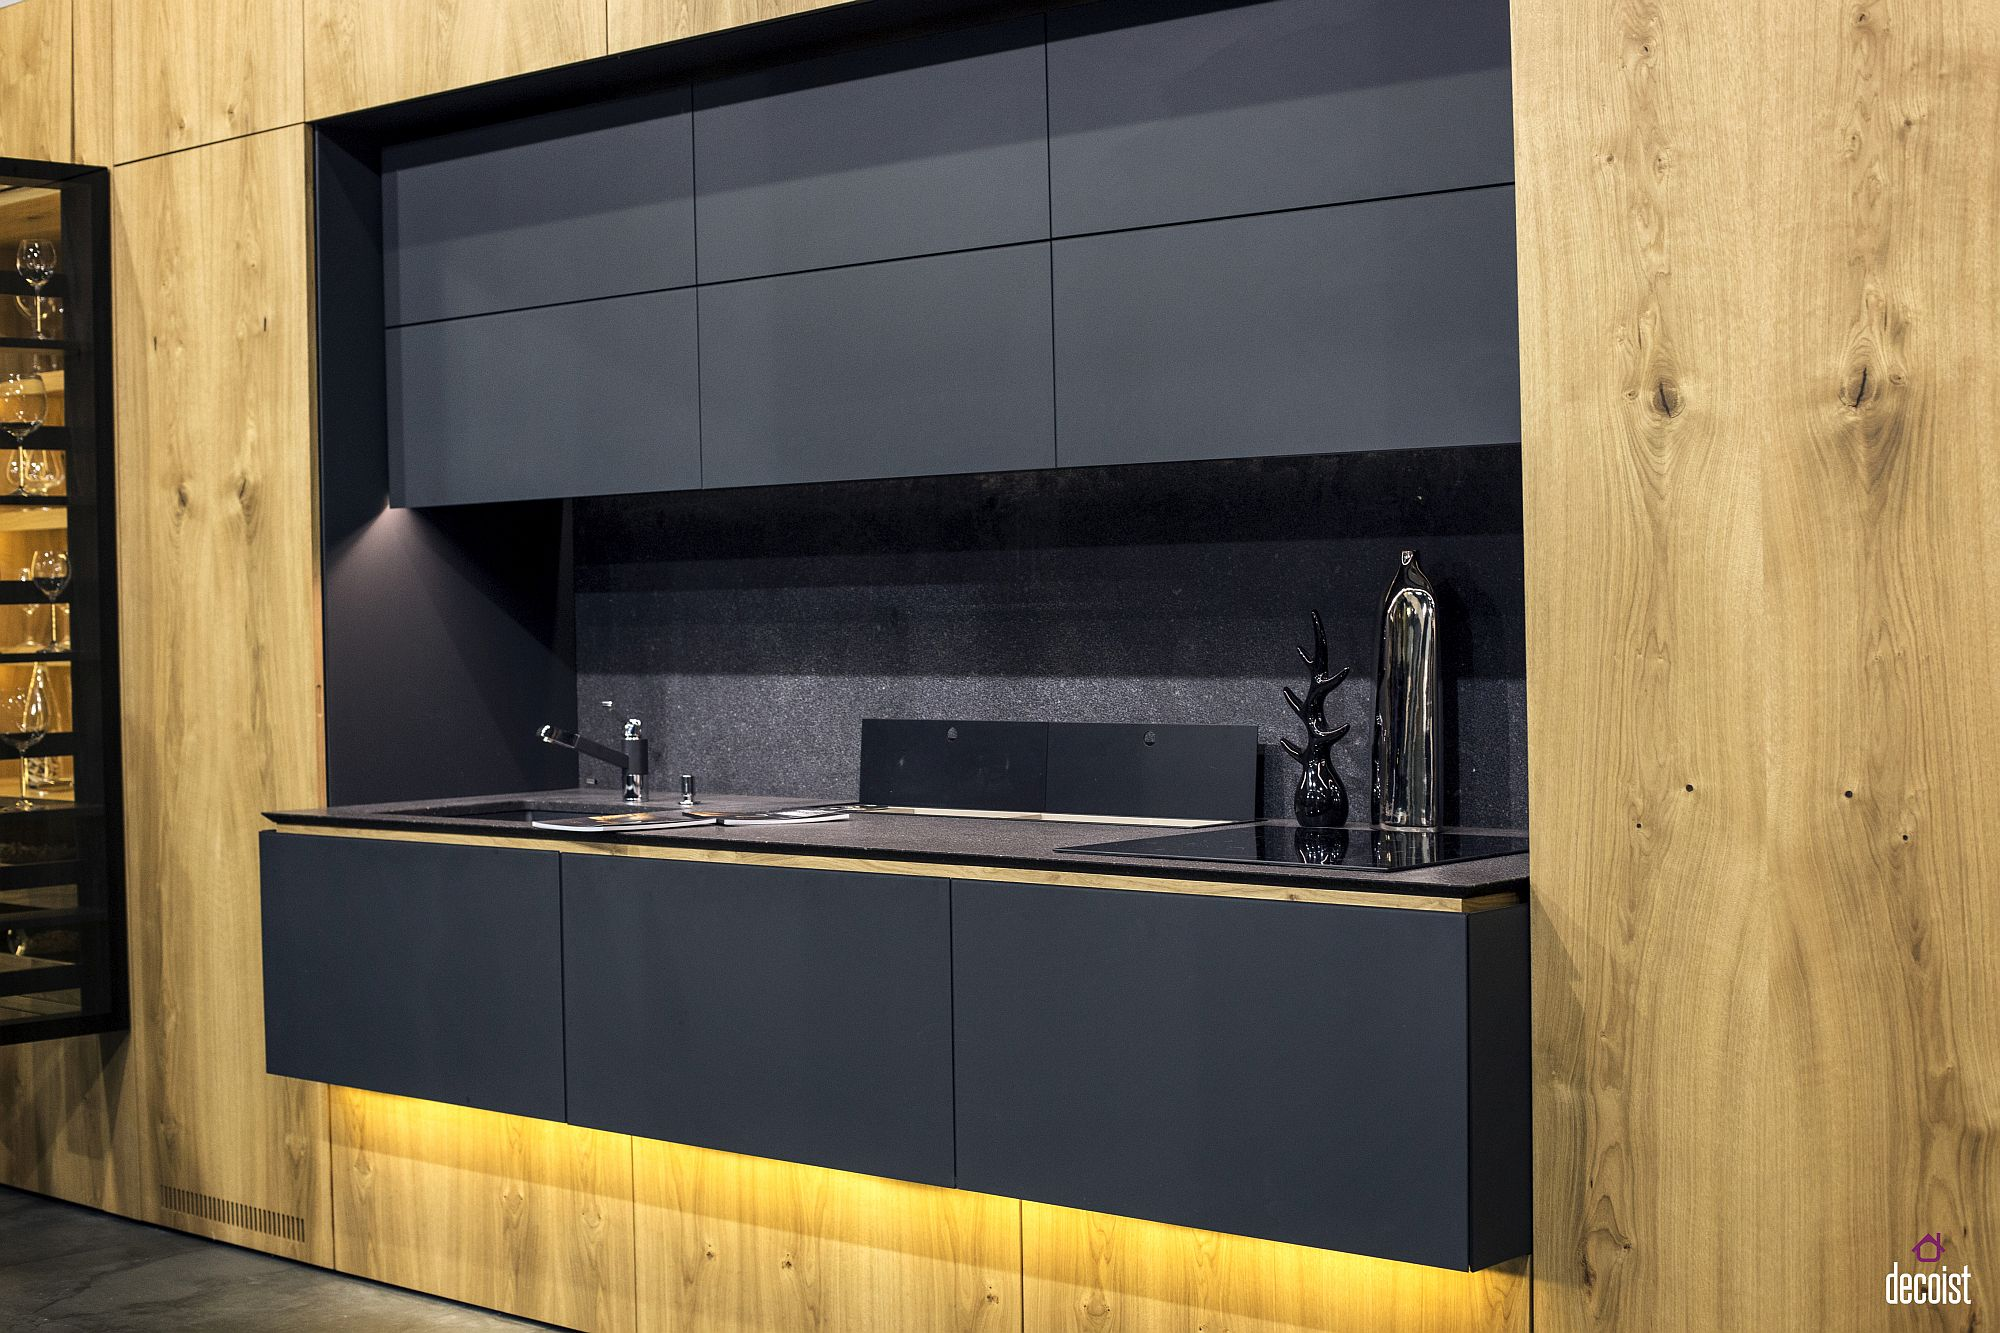 Highlight the most amazing architectural features of your kitchen with LED strip lights